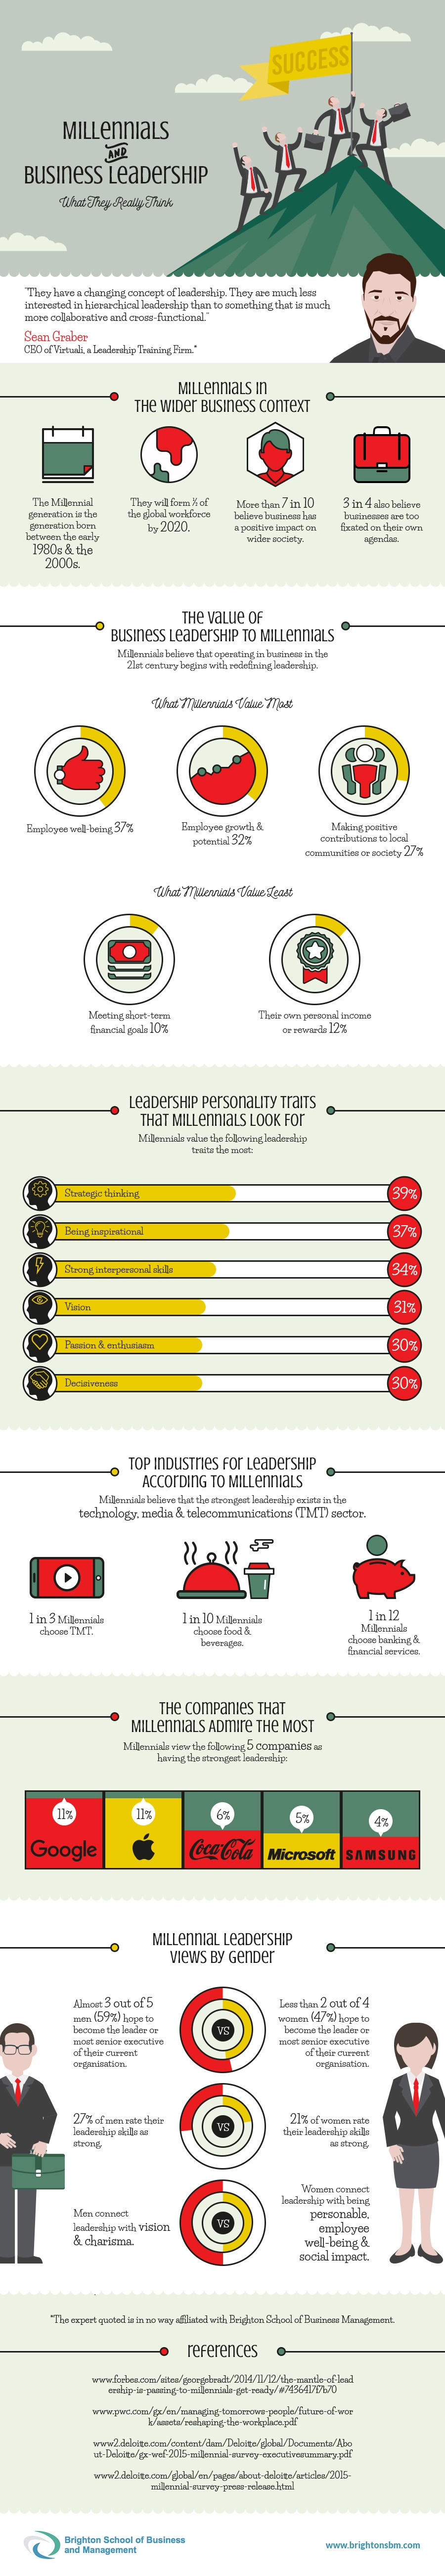 Millennials & Business Leadership: What They Really Think